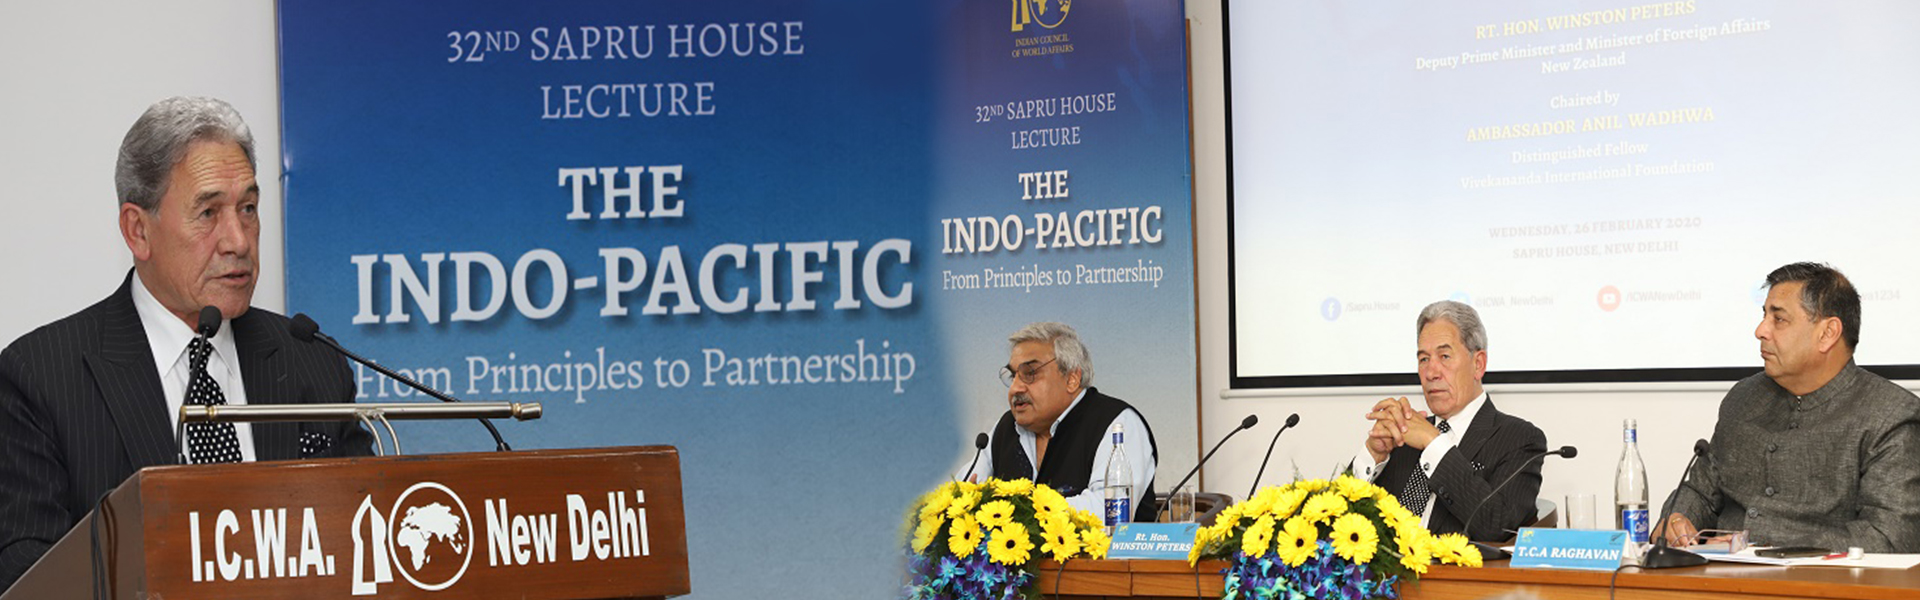 Rt. Hon. Winston Peters, Deputy Prime Minister and Minister of Foreign Affairs, New Zealand delivering 35th Sapru House Lecture on The Indo-Pacific: From Principles to Partnership, 26 February 2020